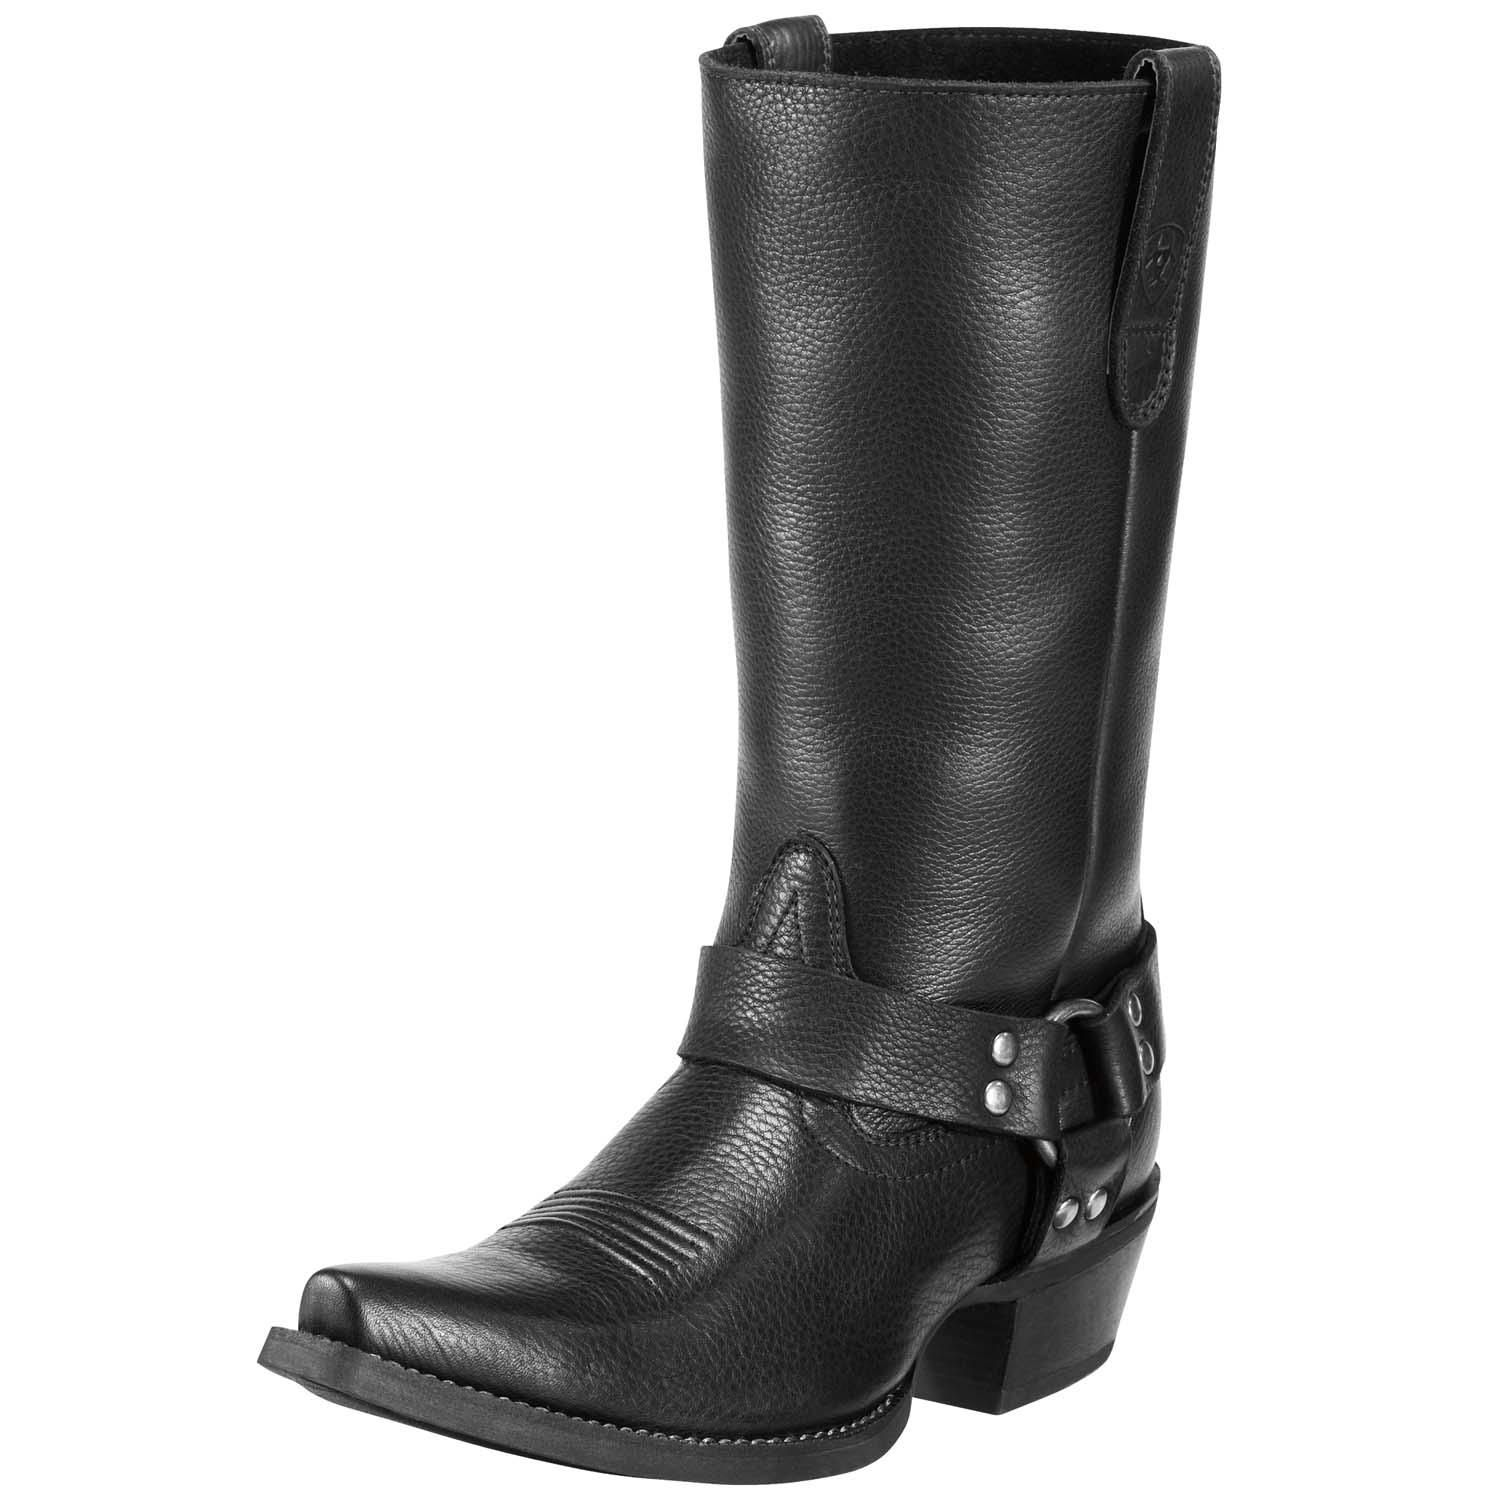 boots black wid cowboy smny comforter most prod hei new boot lasso women qlt p york sm s comfortable womens